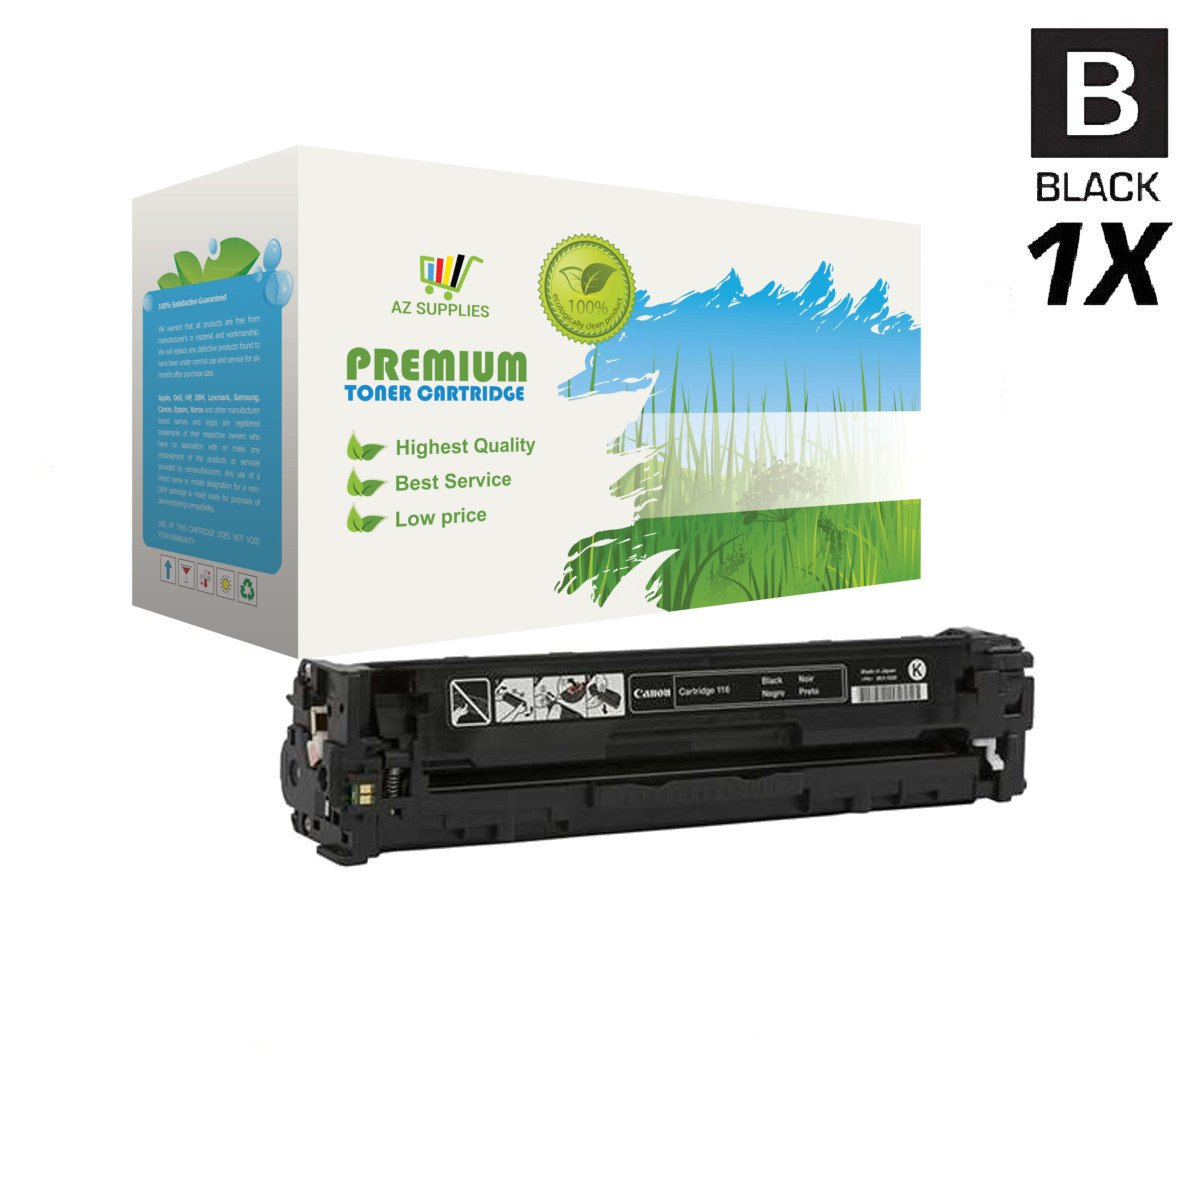 AZ Supplies Toner | 30% more Print Yield | replace for HP 128A CE320A Black for use in HP Color Laserjet CM1415fn, CM1415fnw, CP1525n, CP1525nw, Pro CM1415fn, Pro CP1525nw